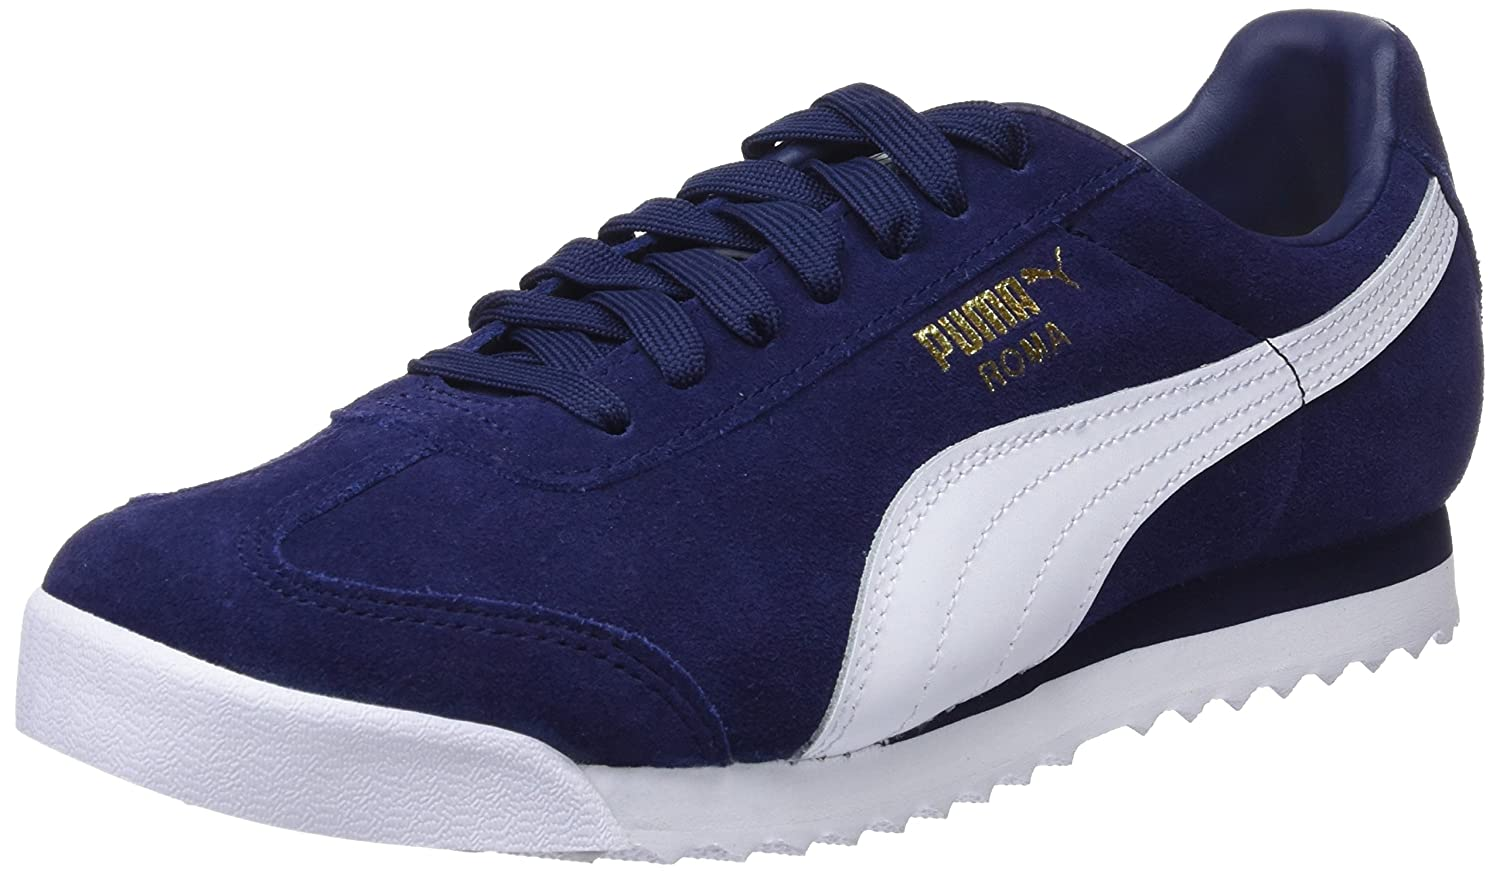 c430d11ea8dea3 Puma Unisex Adults  Roma Suede Trainers  Amazon.co.uk  Shoes   Bags